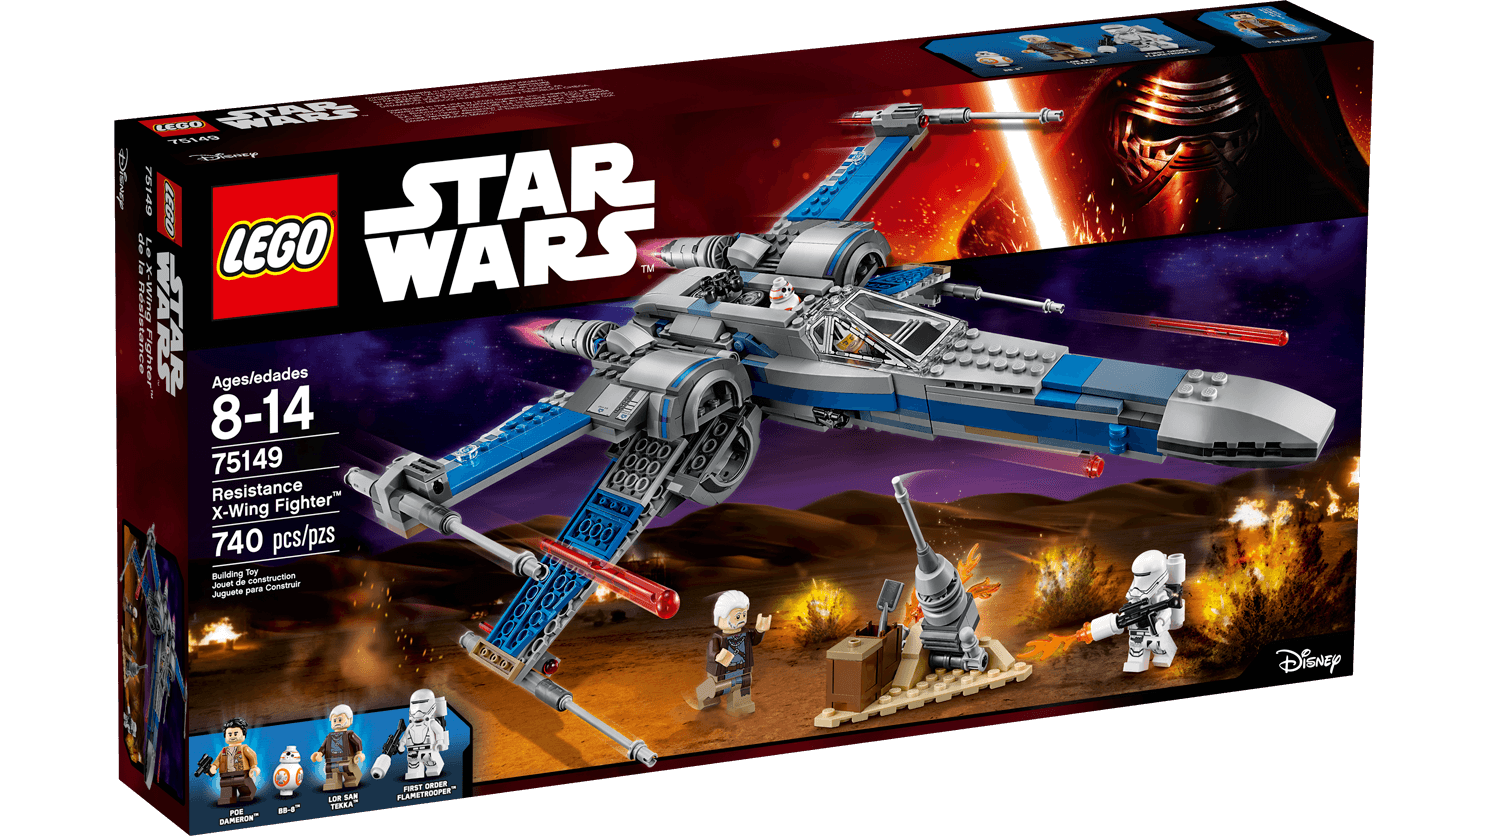 Lego Star Wars - Resistance X-Wing Fighter - Byrnes Online